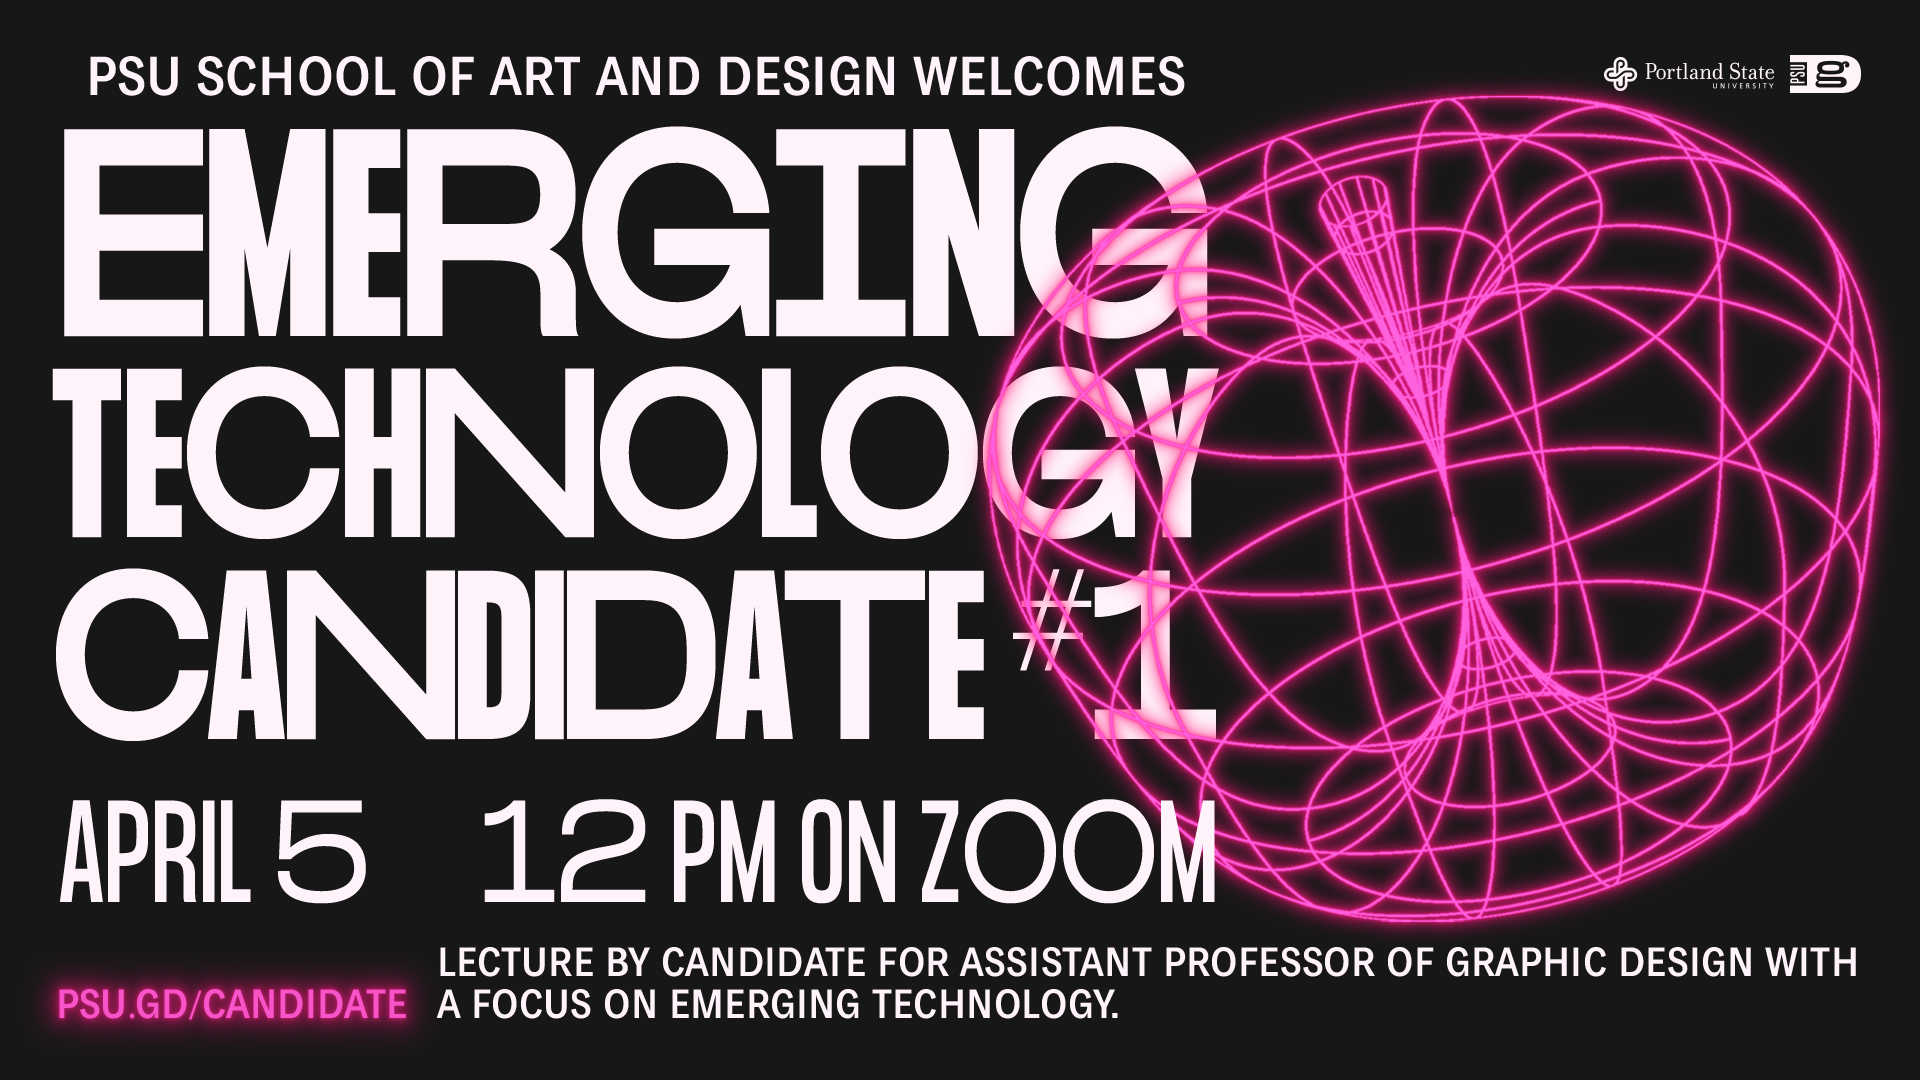 PSU School of Art and Design welcomes Emerging Technology Candidate #1: April 5, 12PM on Zoom. psu.gd/candidate